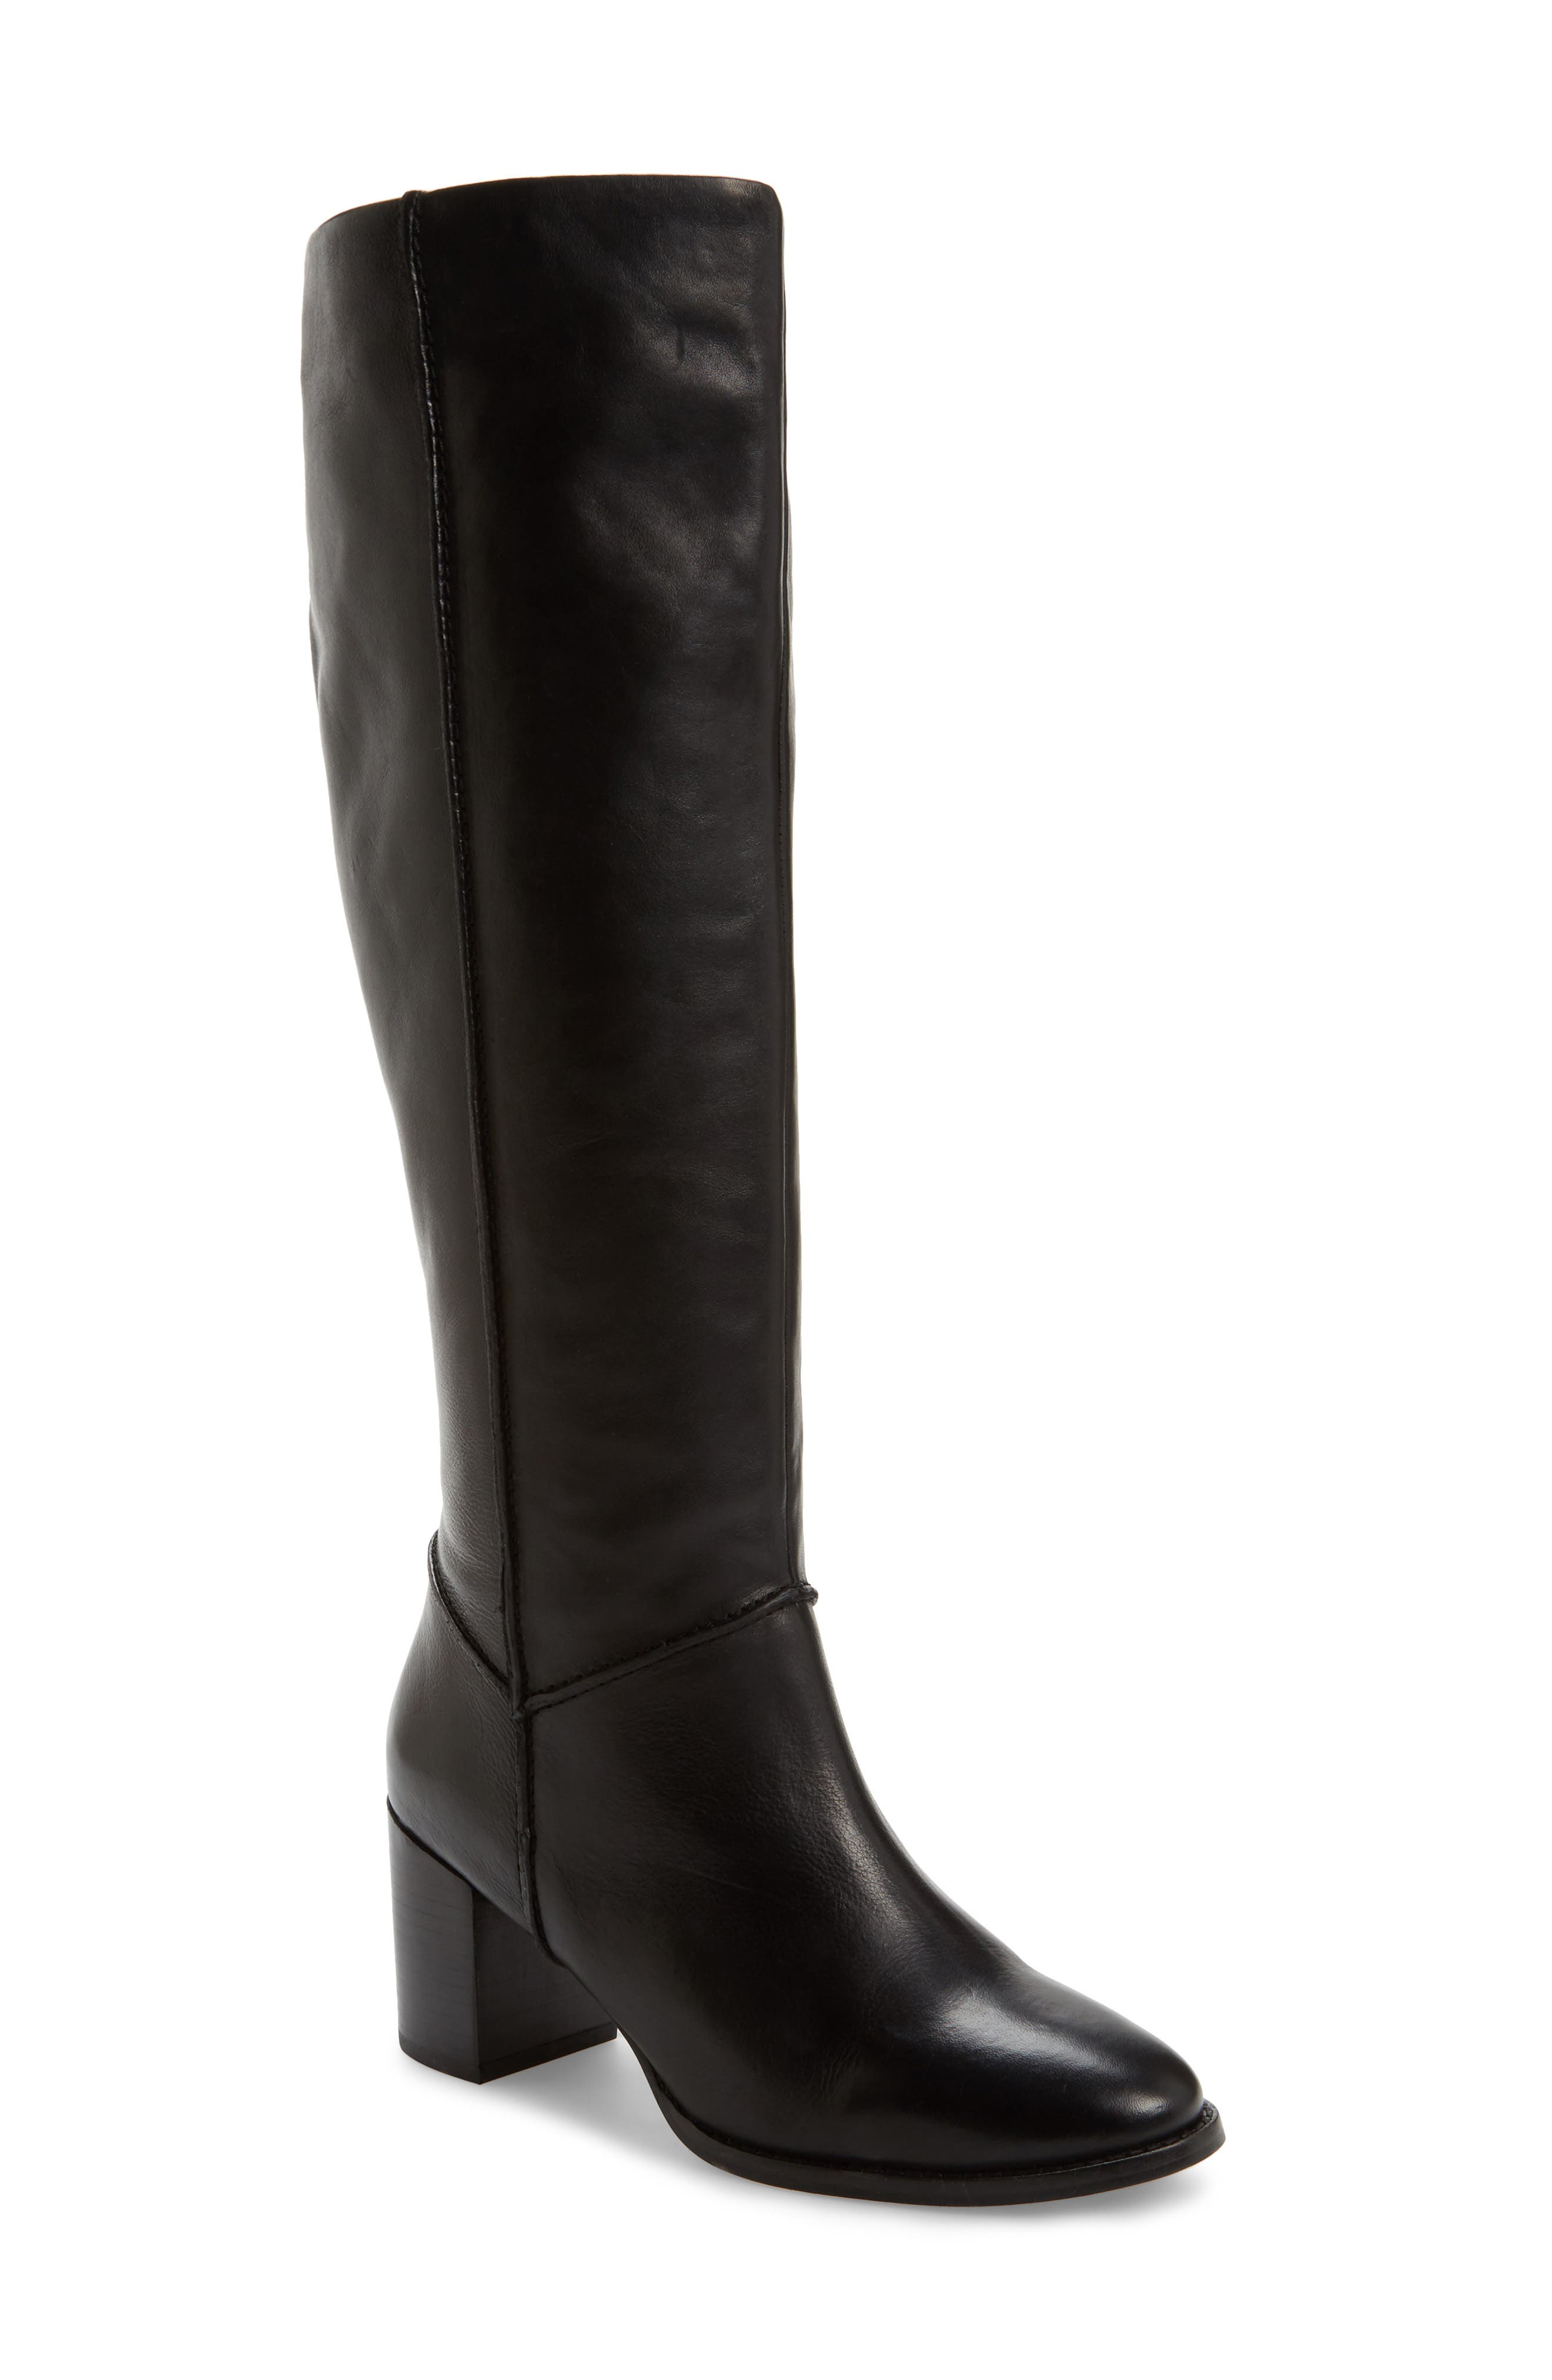 Final Bow Boot,                             Main thumbnail 1, color,                             Black Leather